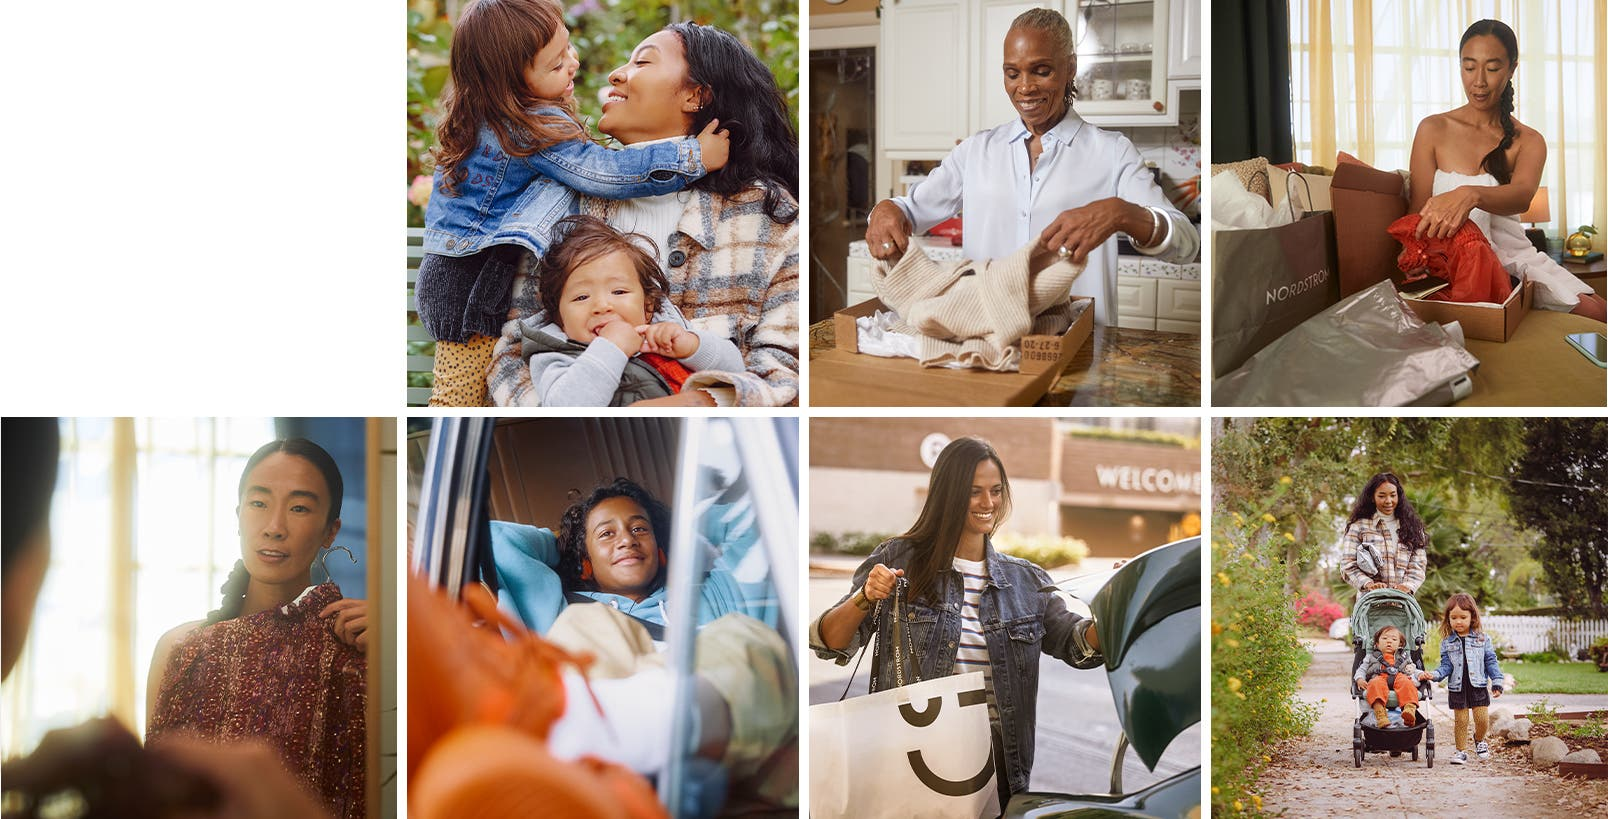 A woman with two children. Women opening Nordstrom packages. A woman in front of a mirror. A person reclining in a car. A woman putting a shopping bag in a car.